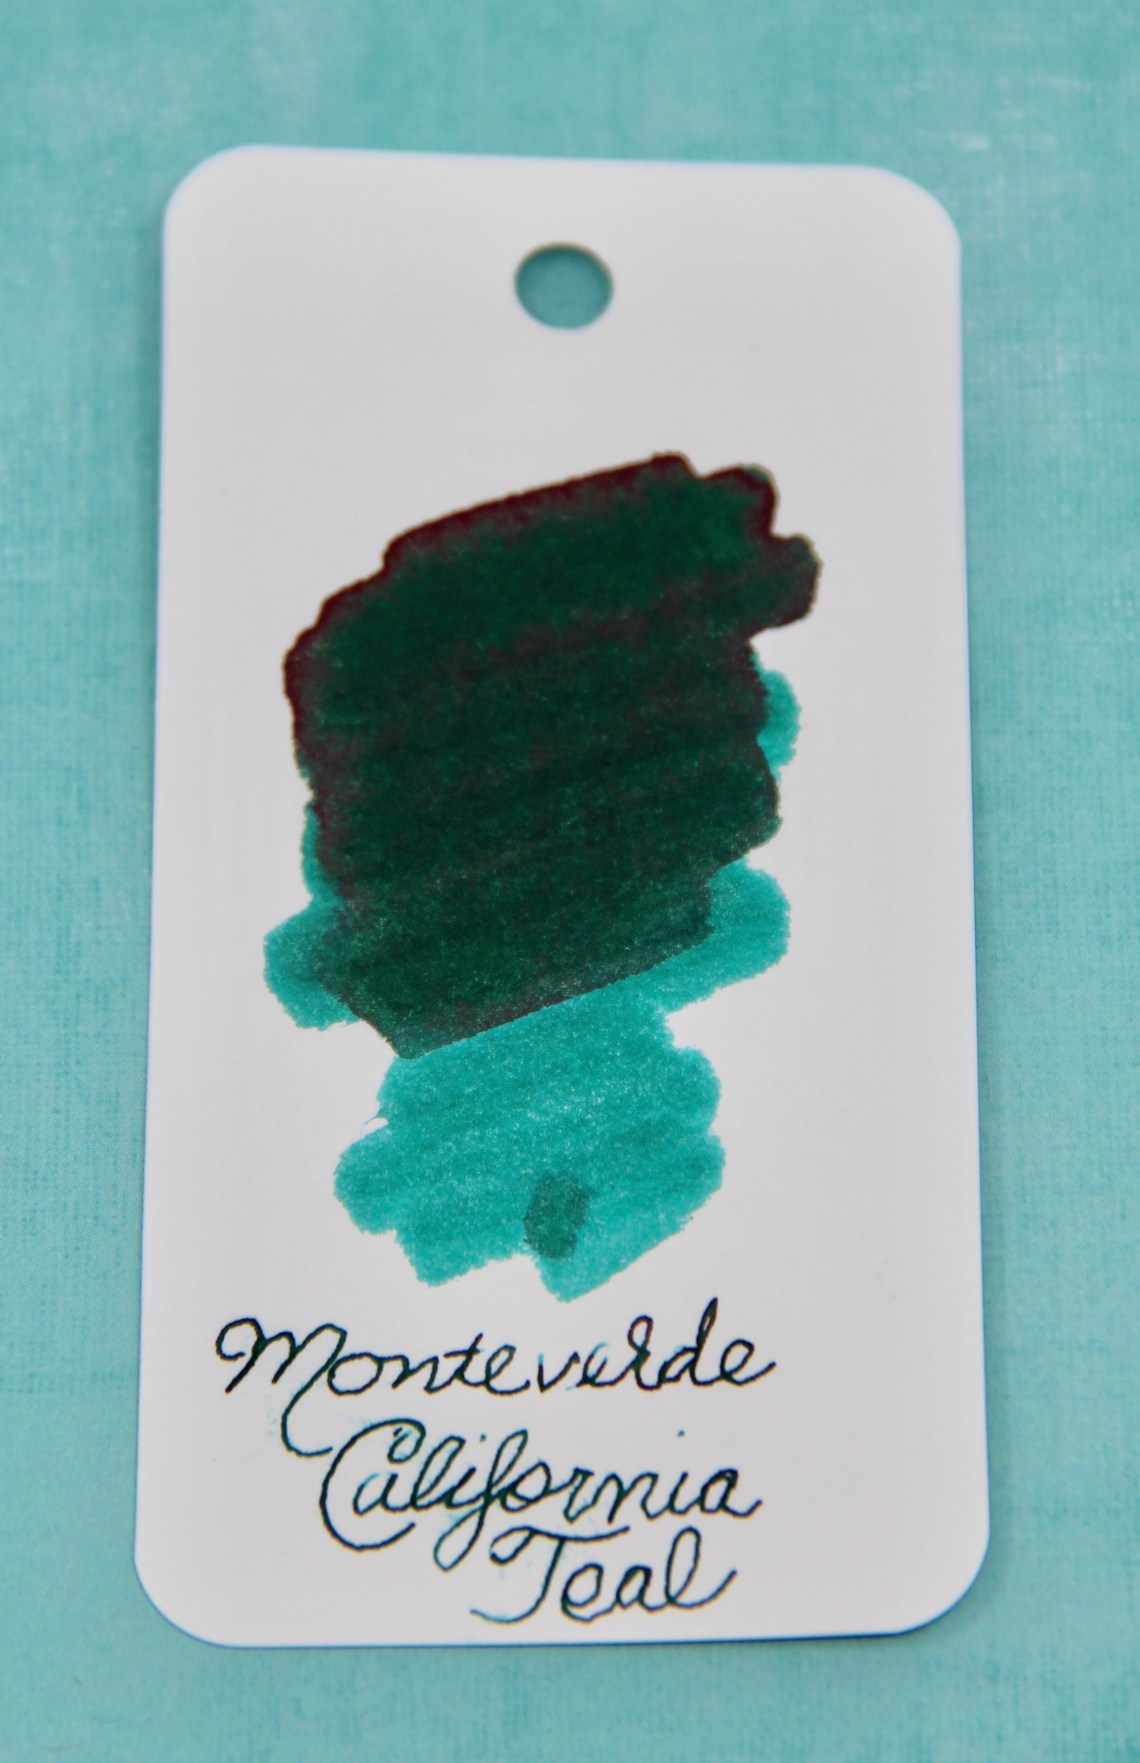 Monteverde California Teal